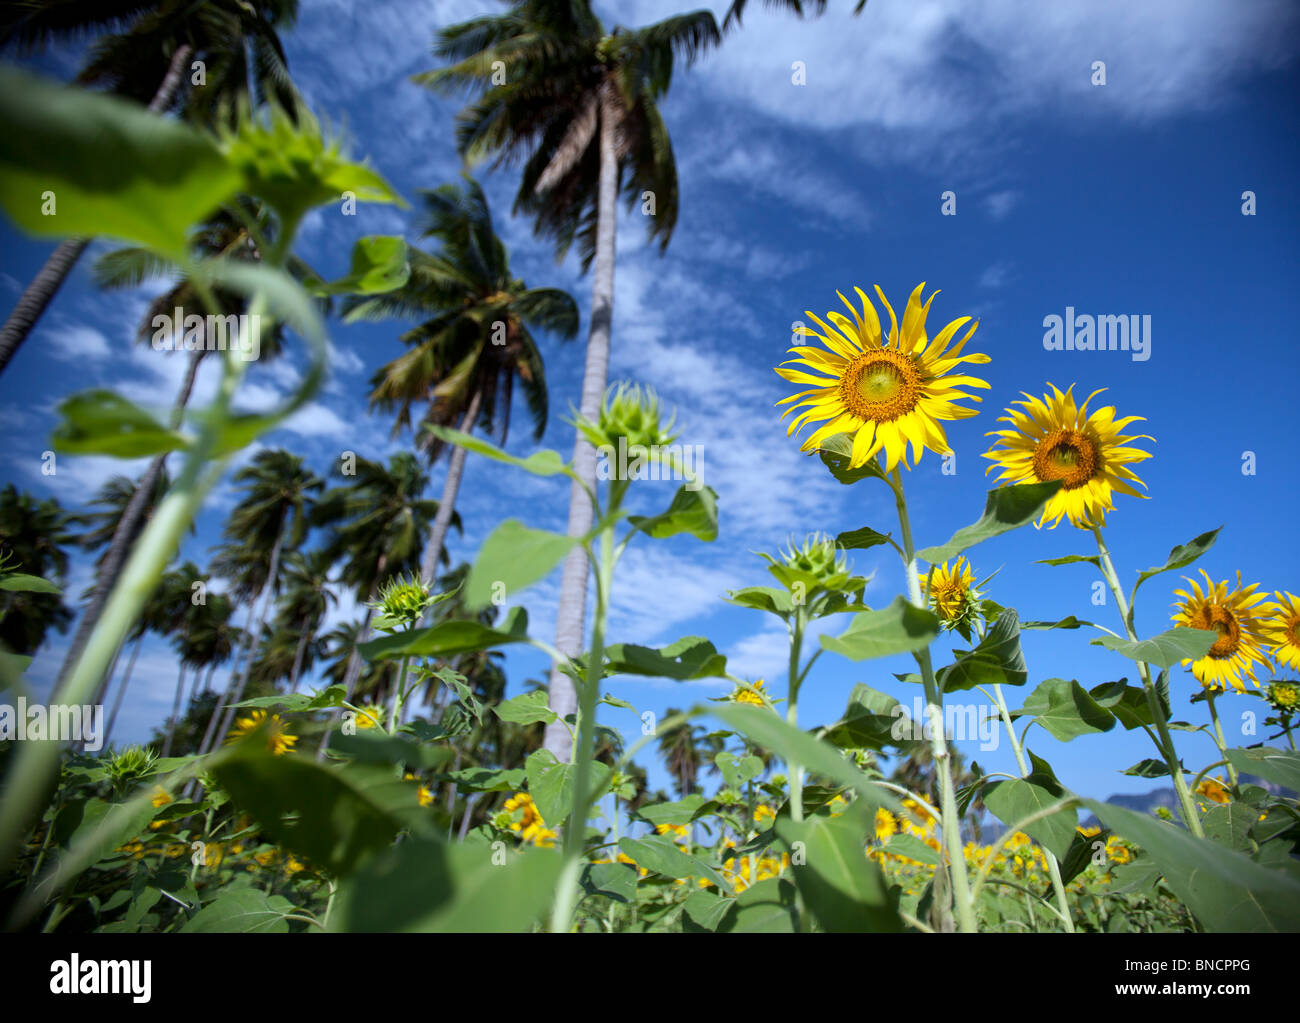 Sunflower with Blue sky, Lop Buri, Thailand. - Stock Image